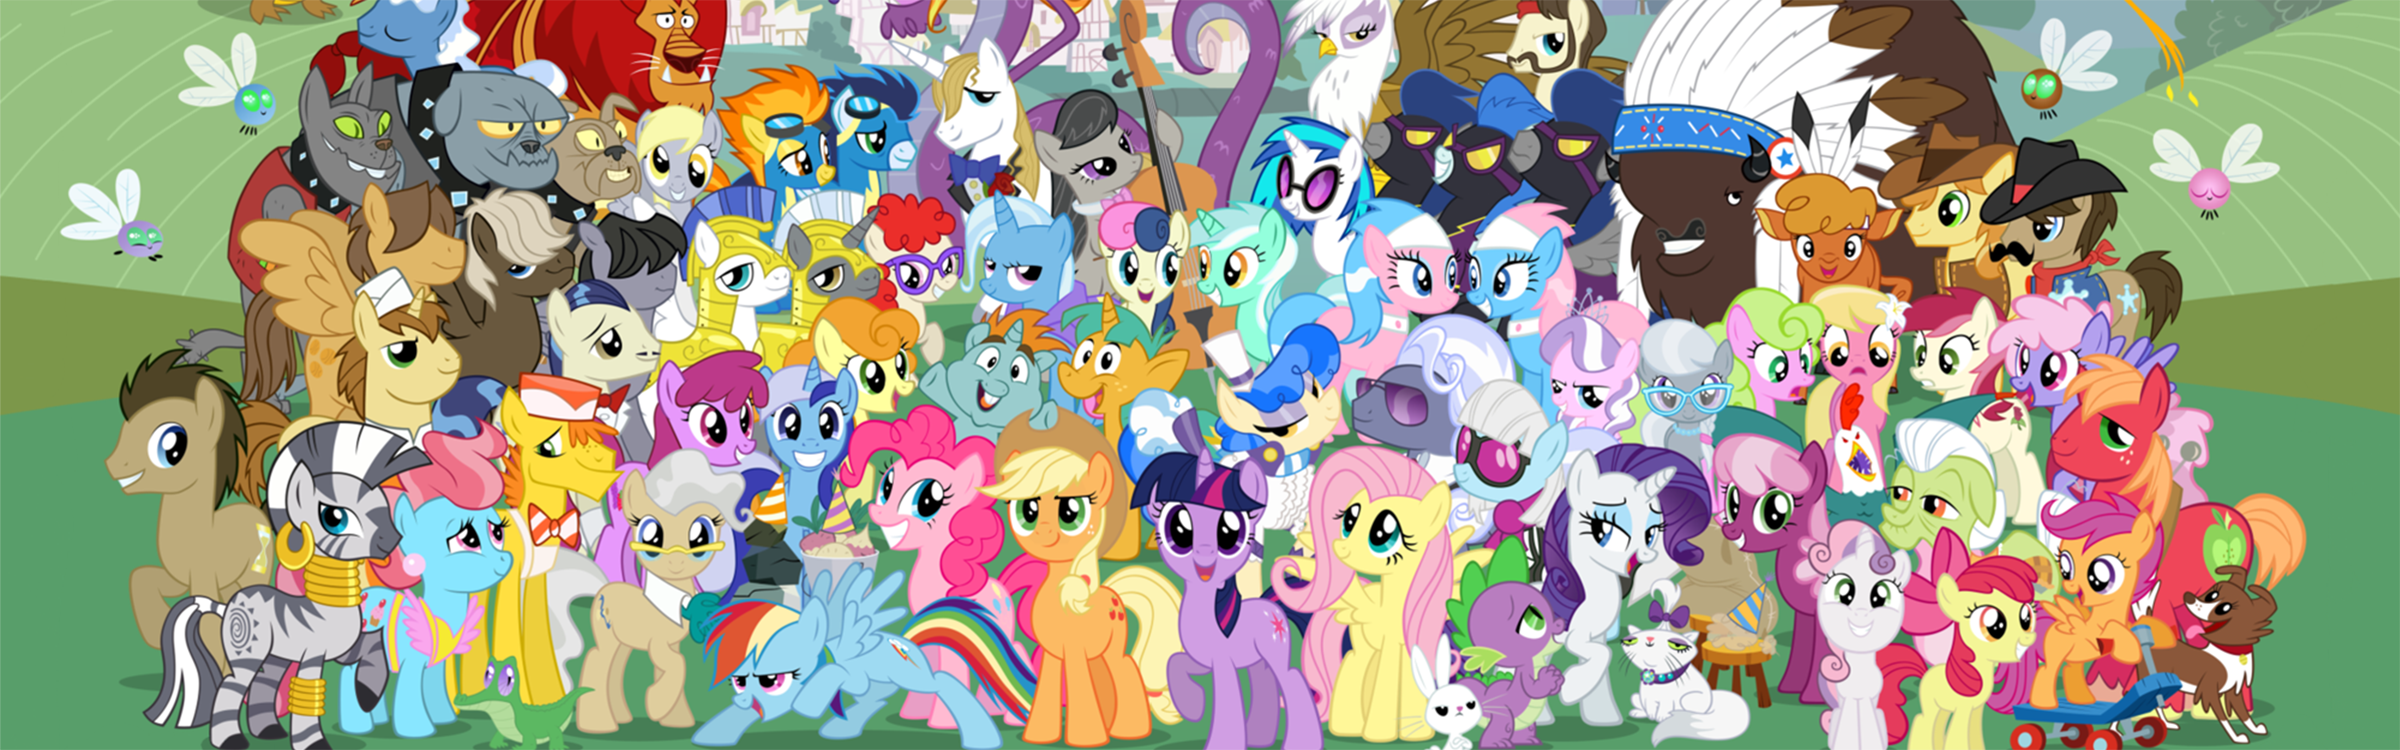 My little pony   header